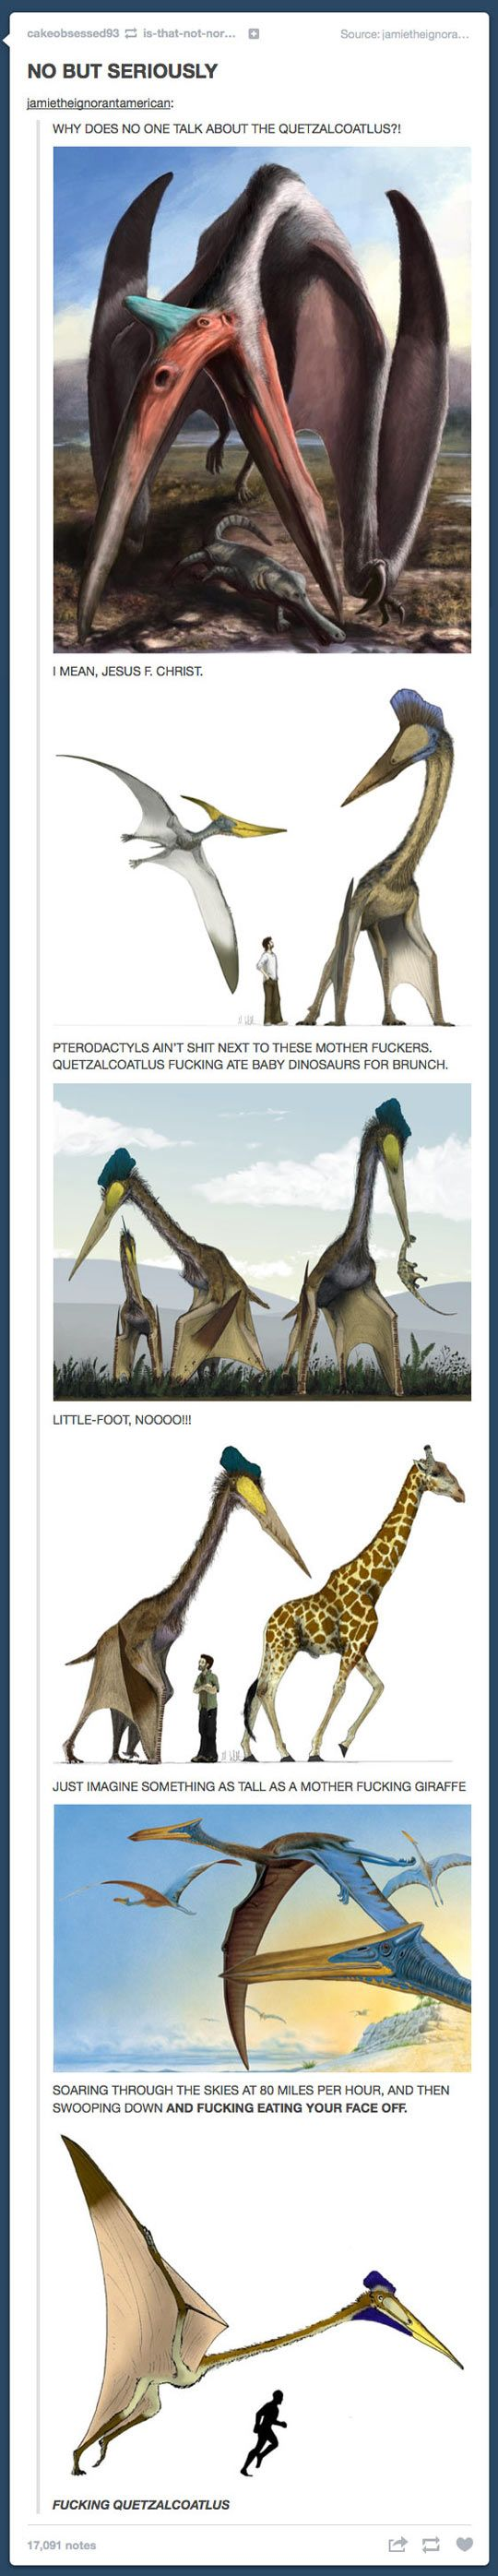 NO BUT SERIOUSLY Quetzalcoatlus!?